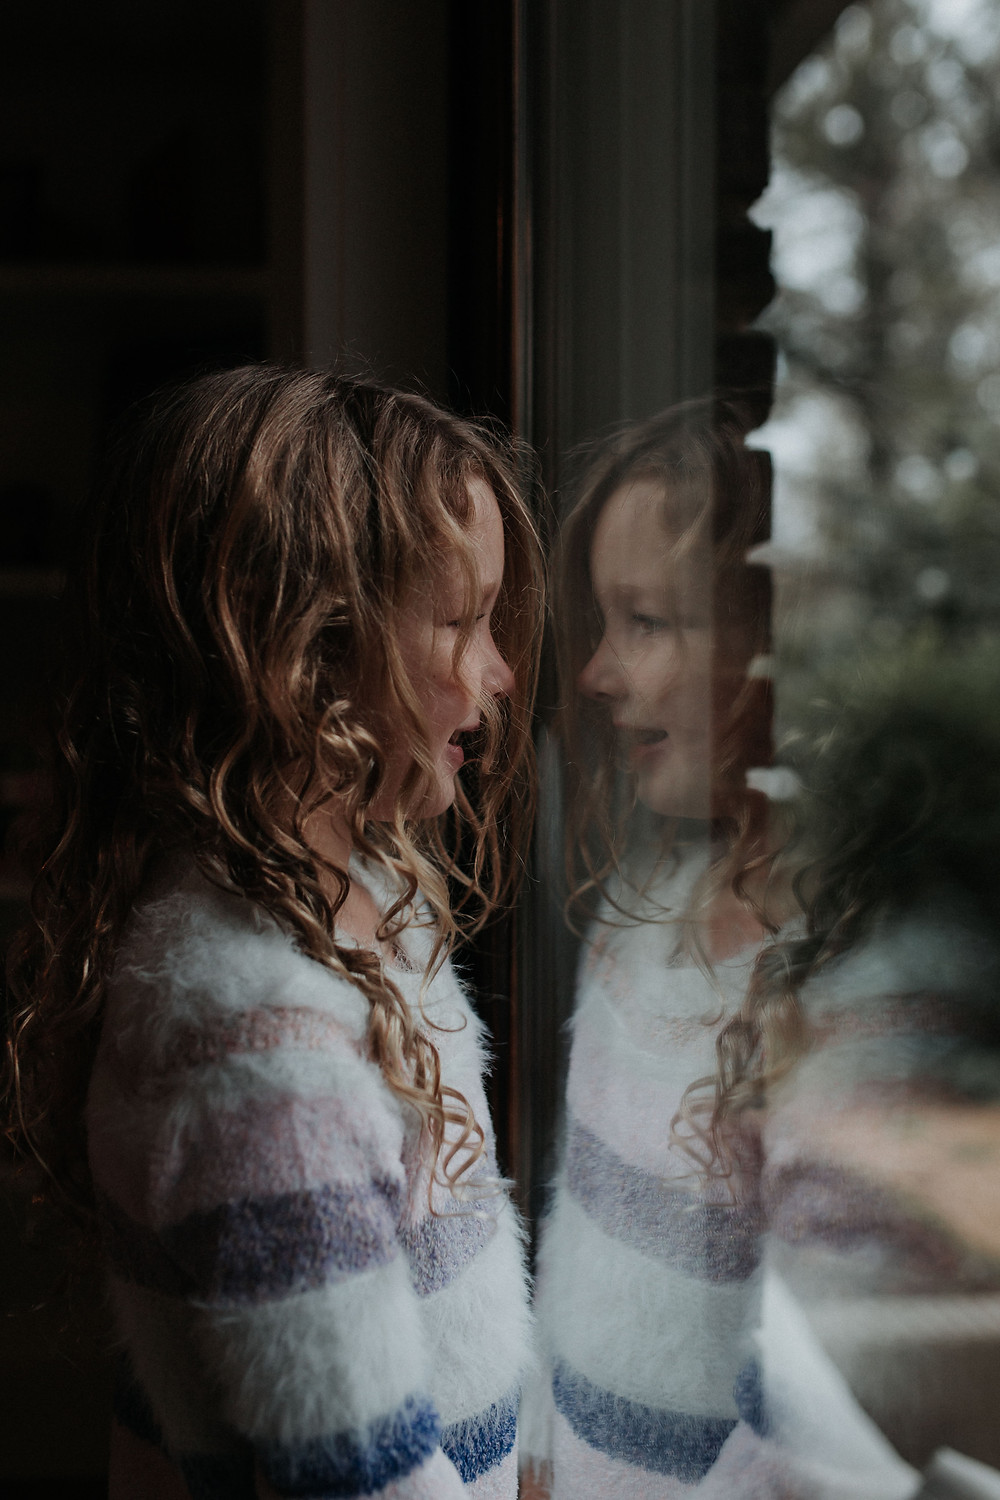 A little girl looking out the window